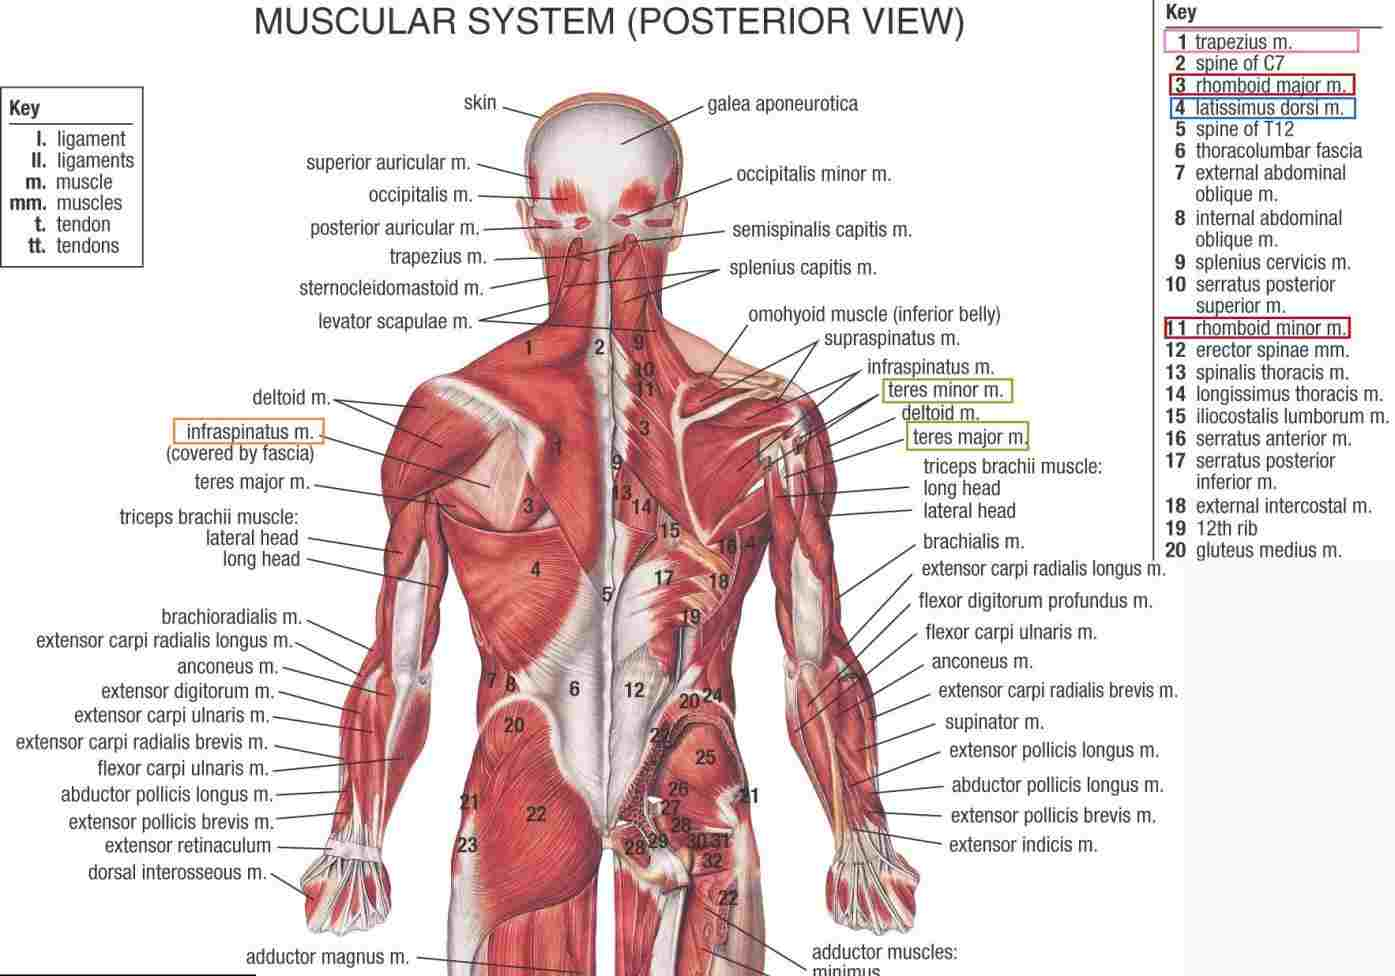 Human Muscle Diagram Hb Human Muscle Anatomy Hip Diagram Muscular System Posterior View